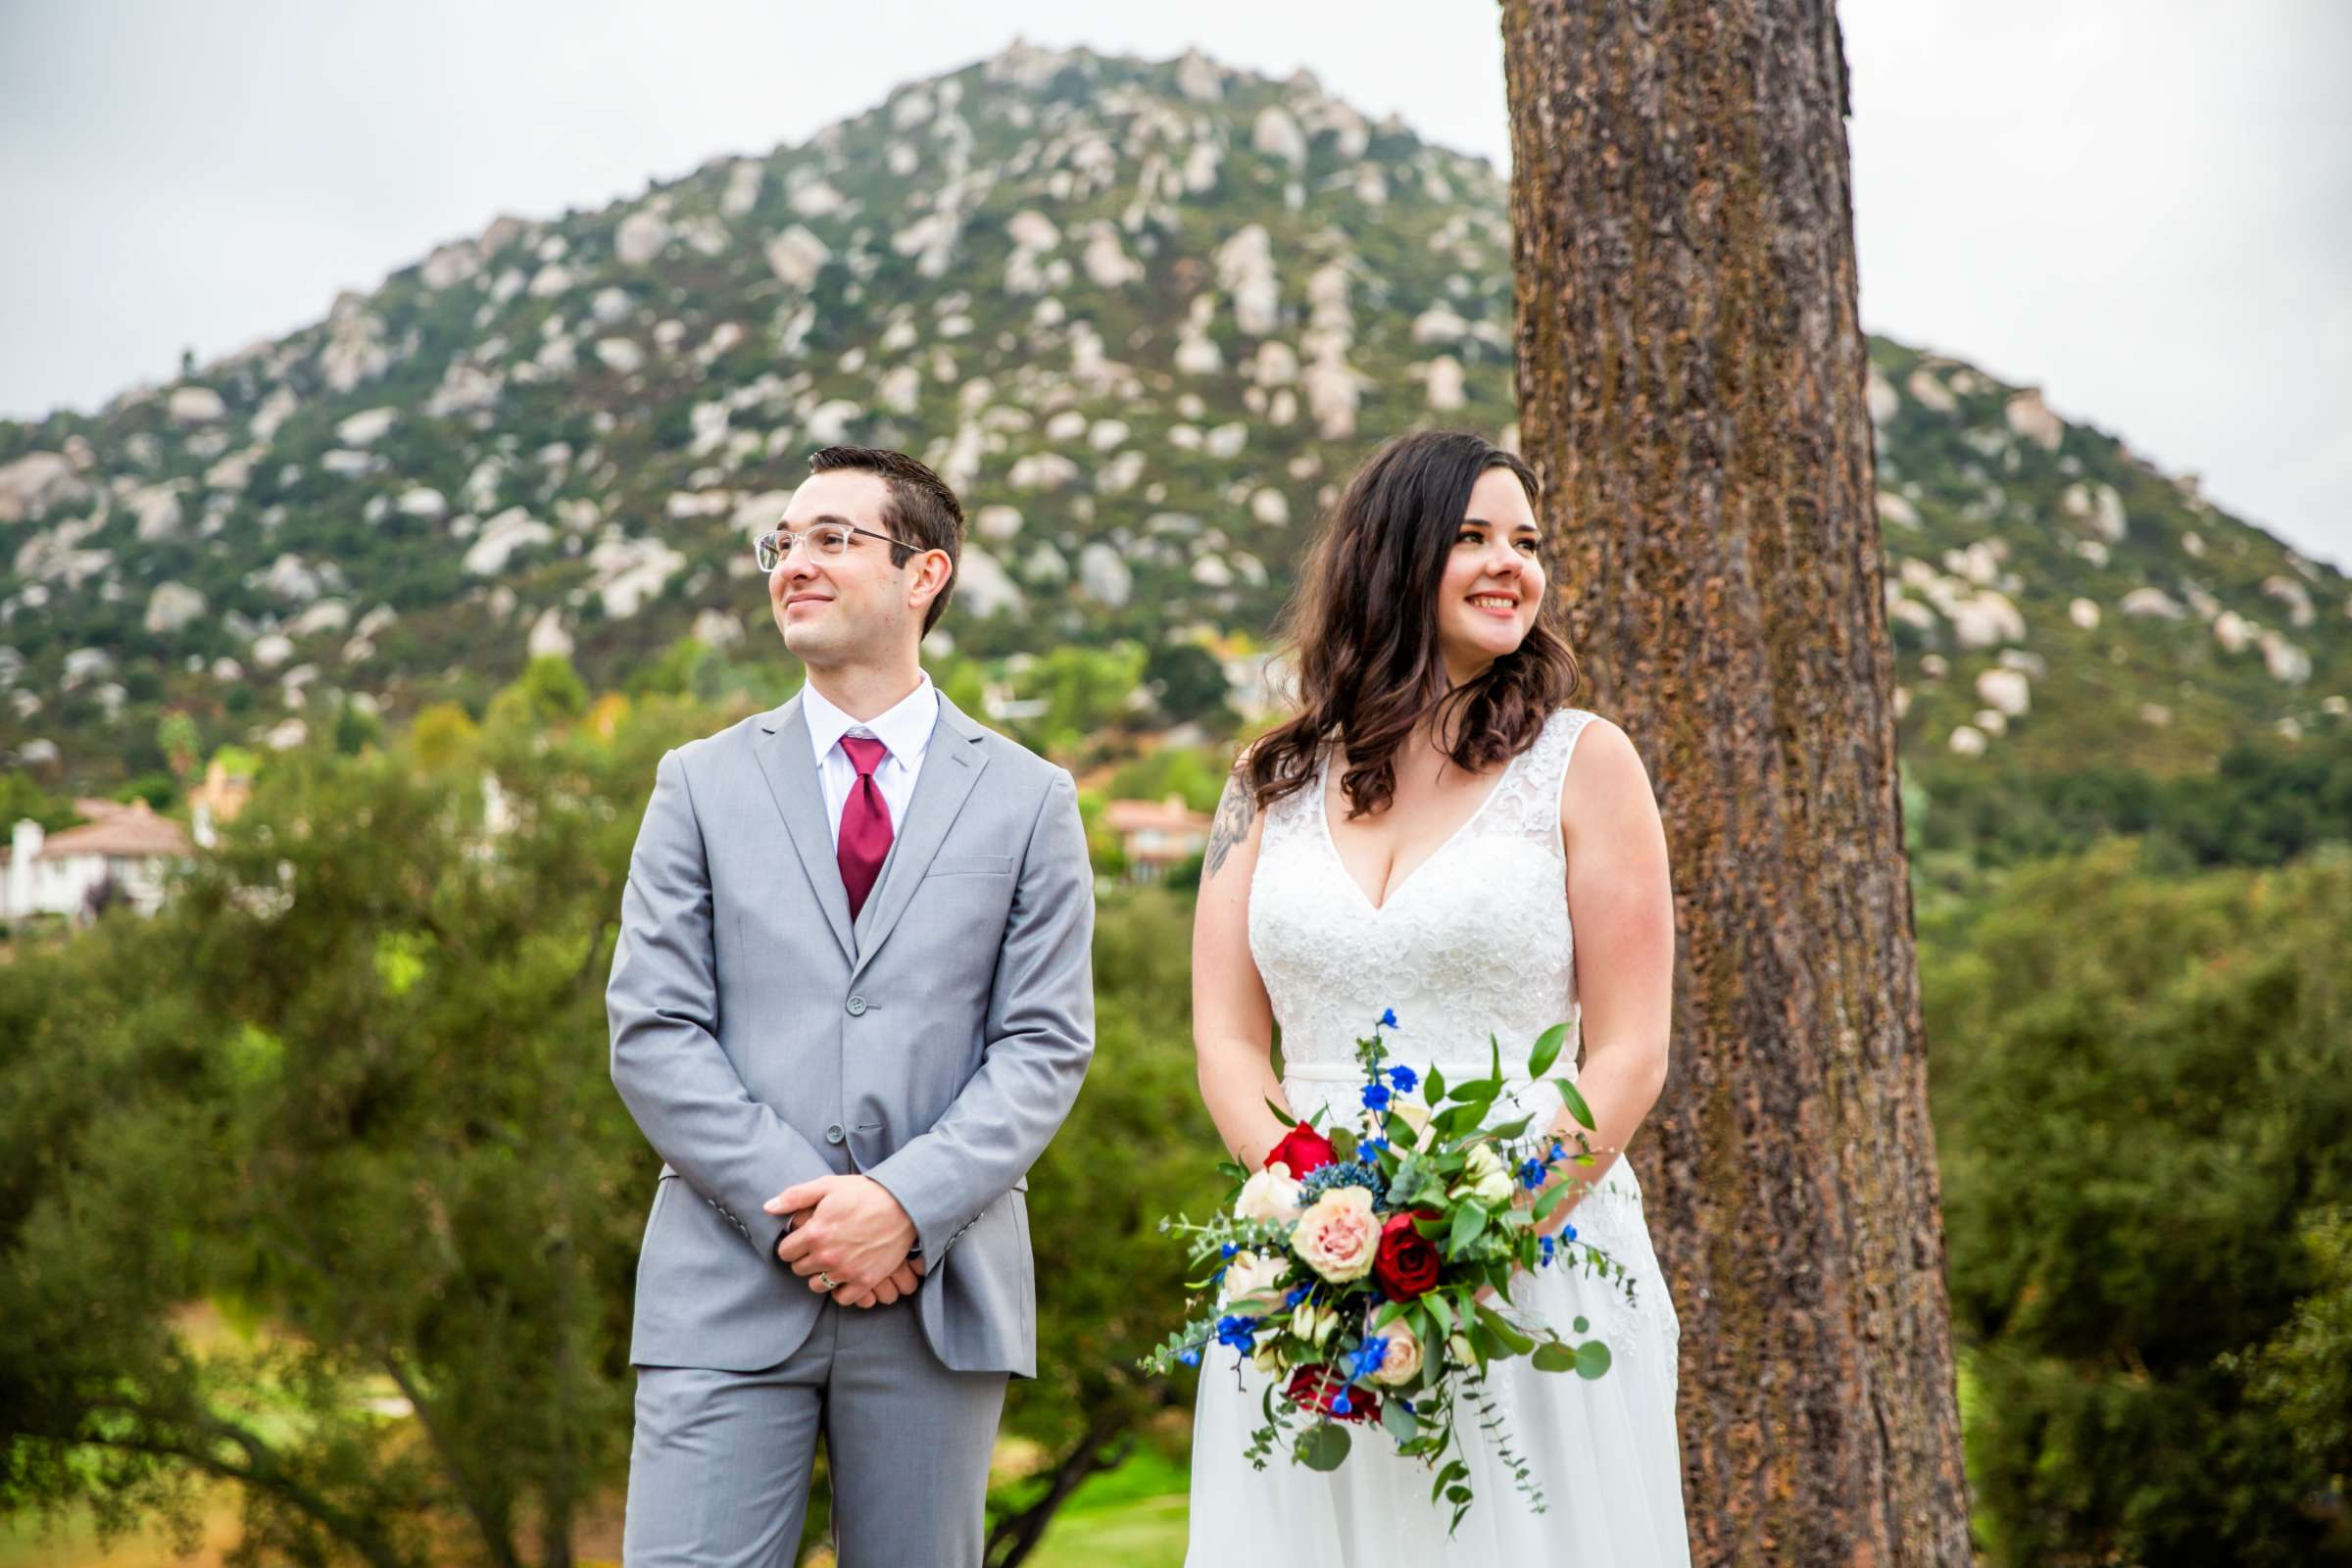 Mt Woodson Castle Wedding, Valerie and Ian Wedding Photo #30 by True Photography